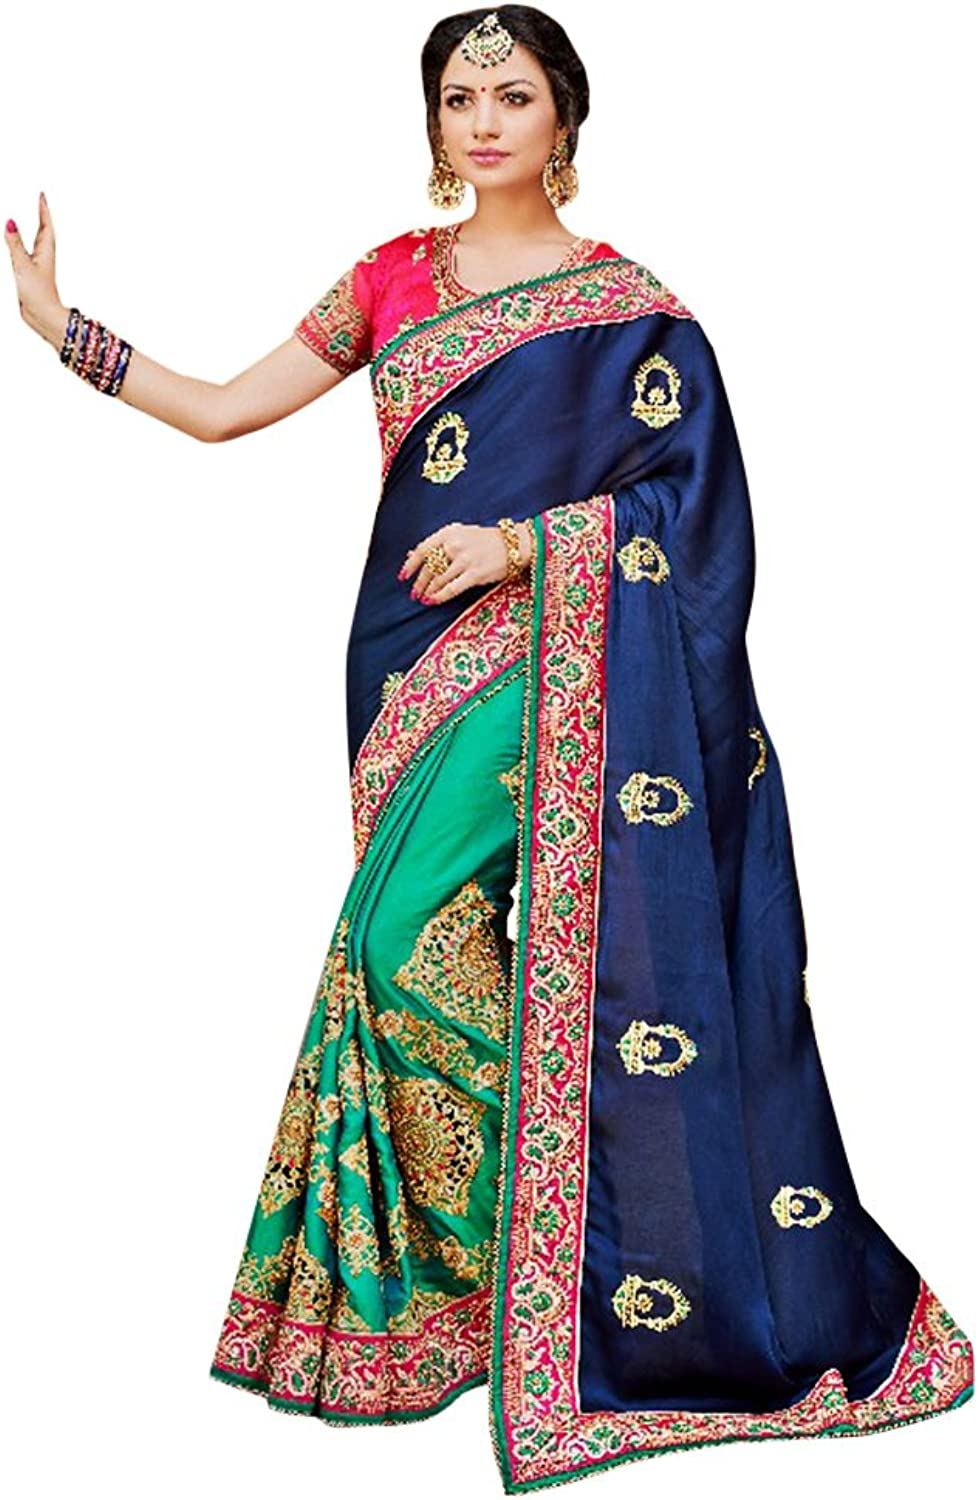 Bridal Ethnic Bollywood Collection Saree Sari Ceremony Bridal Wedding 760 2